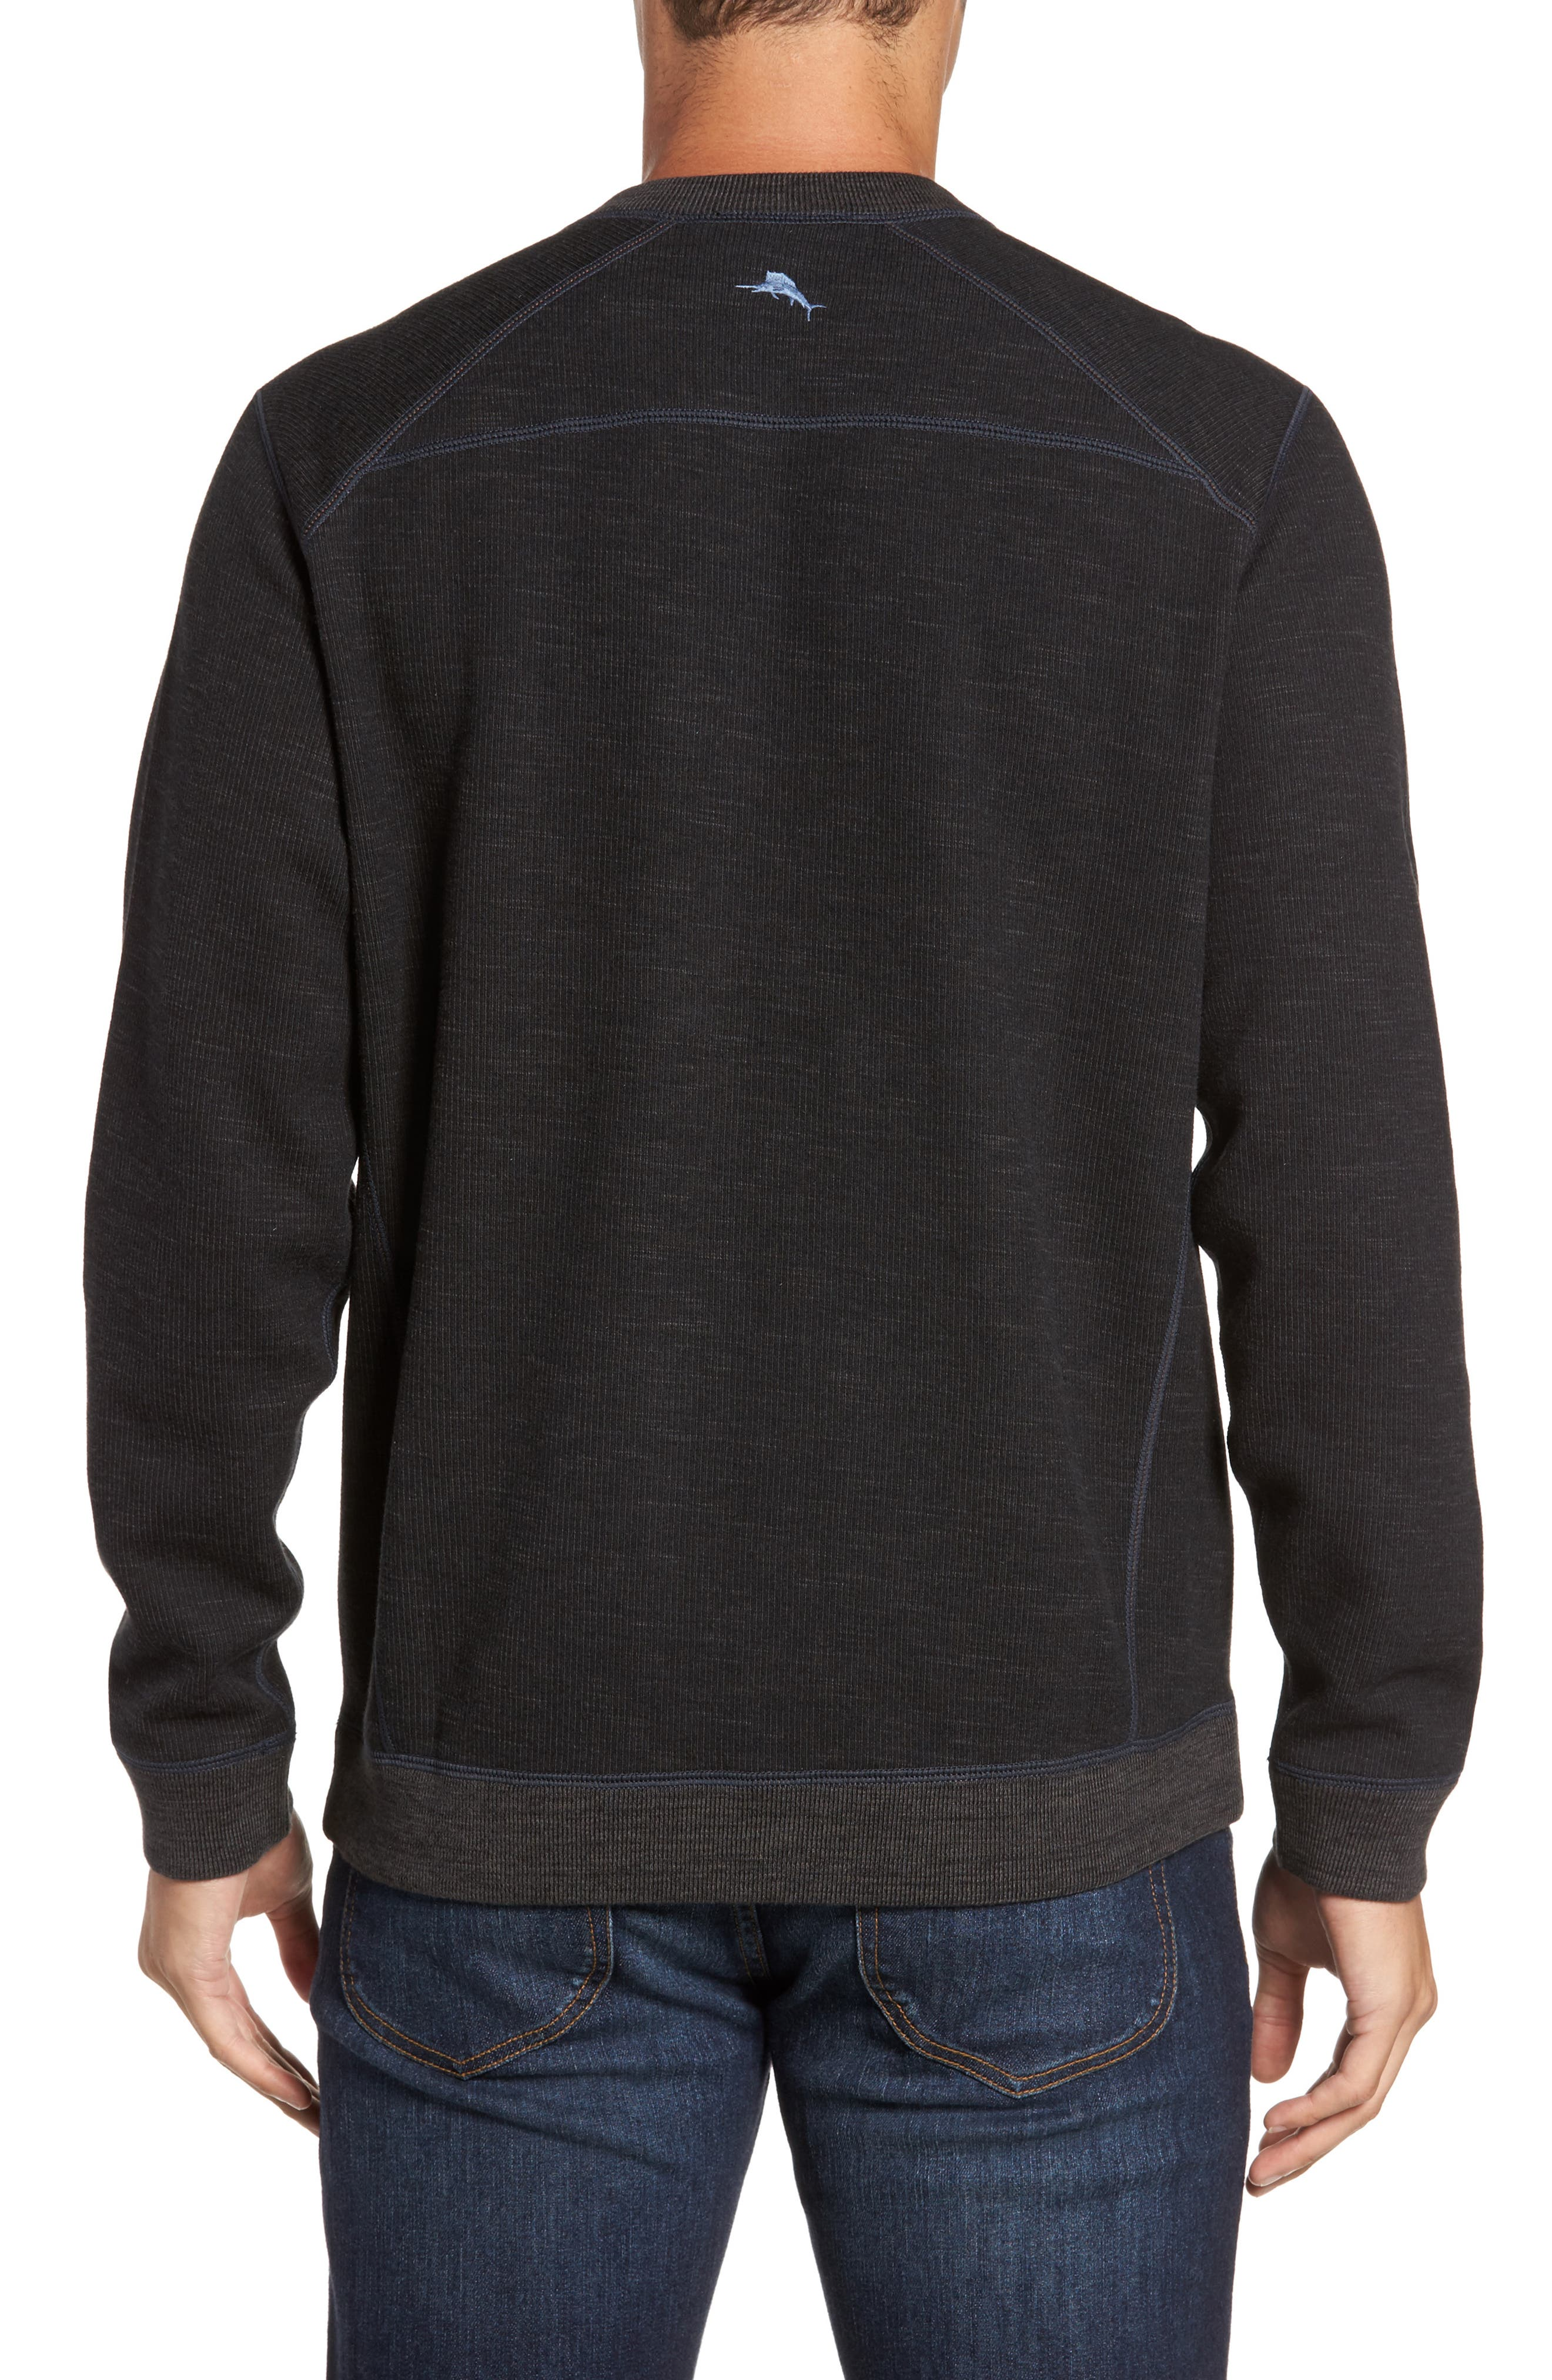 Flipside Pro Reversible Sweatshirt,                             Alternate thumbnail 2, color,                             Black